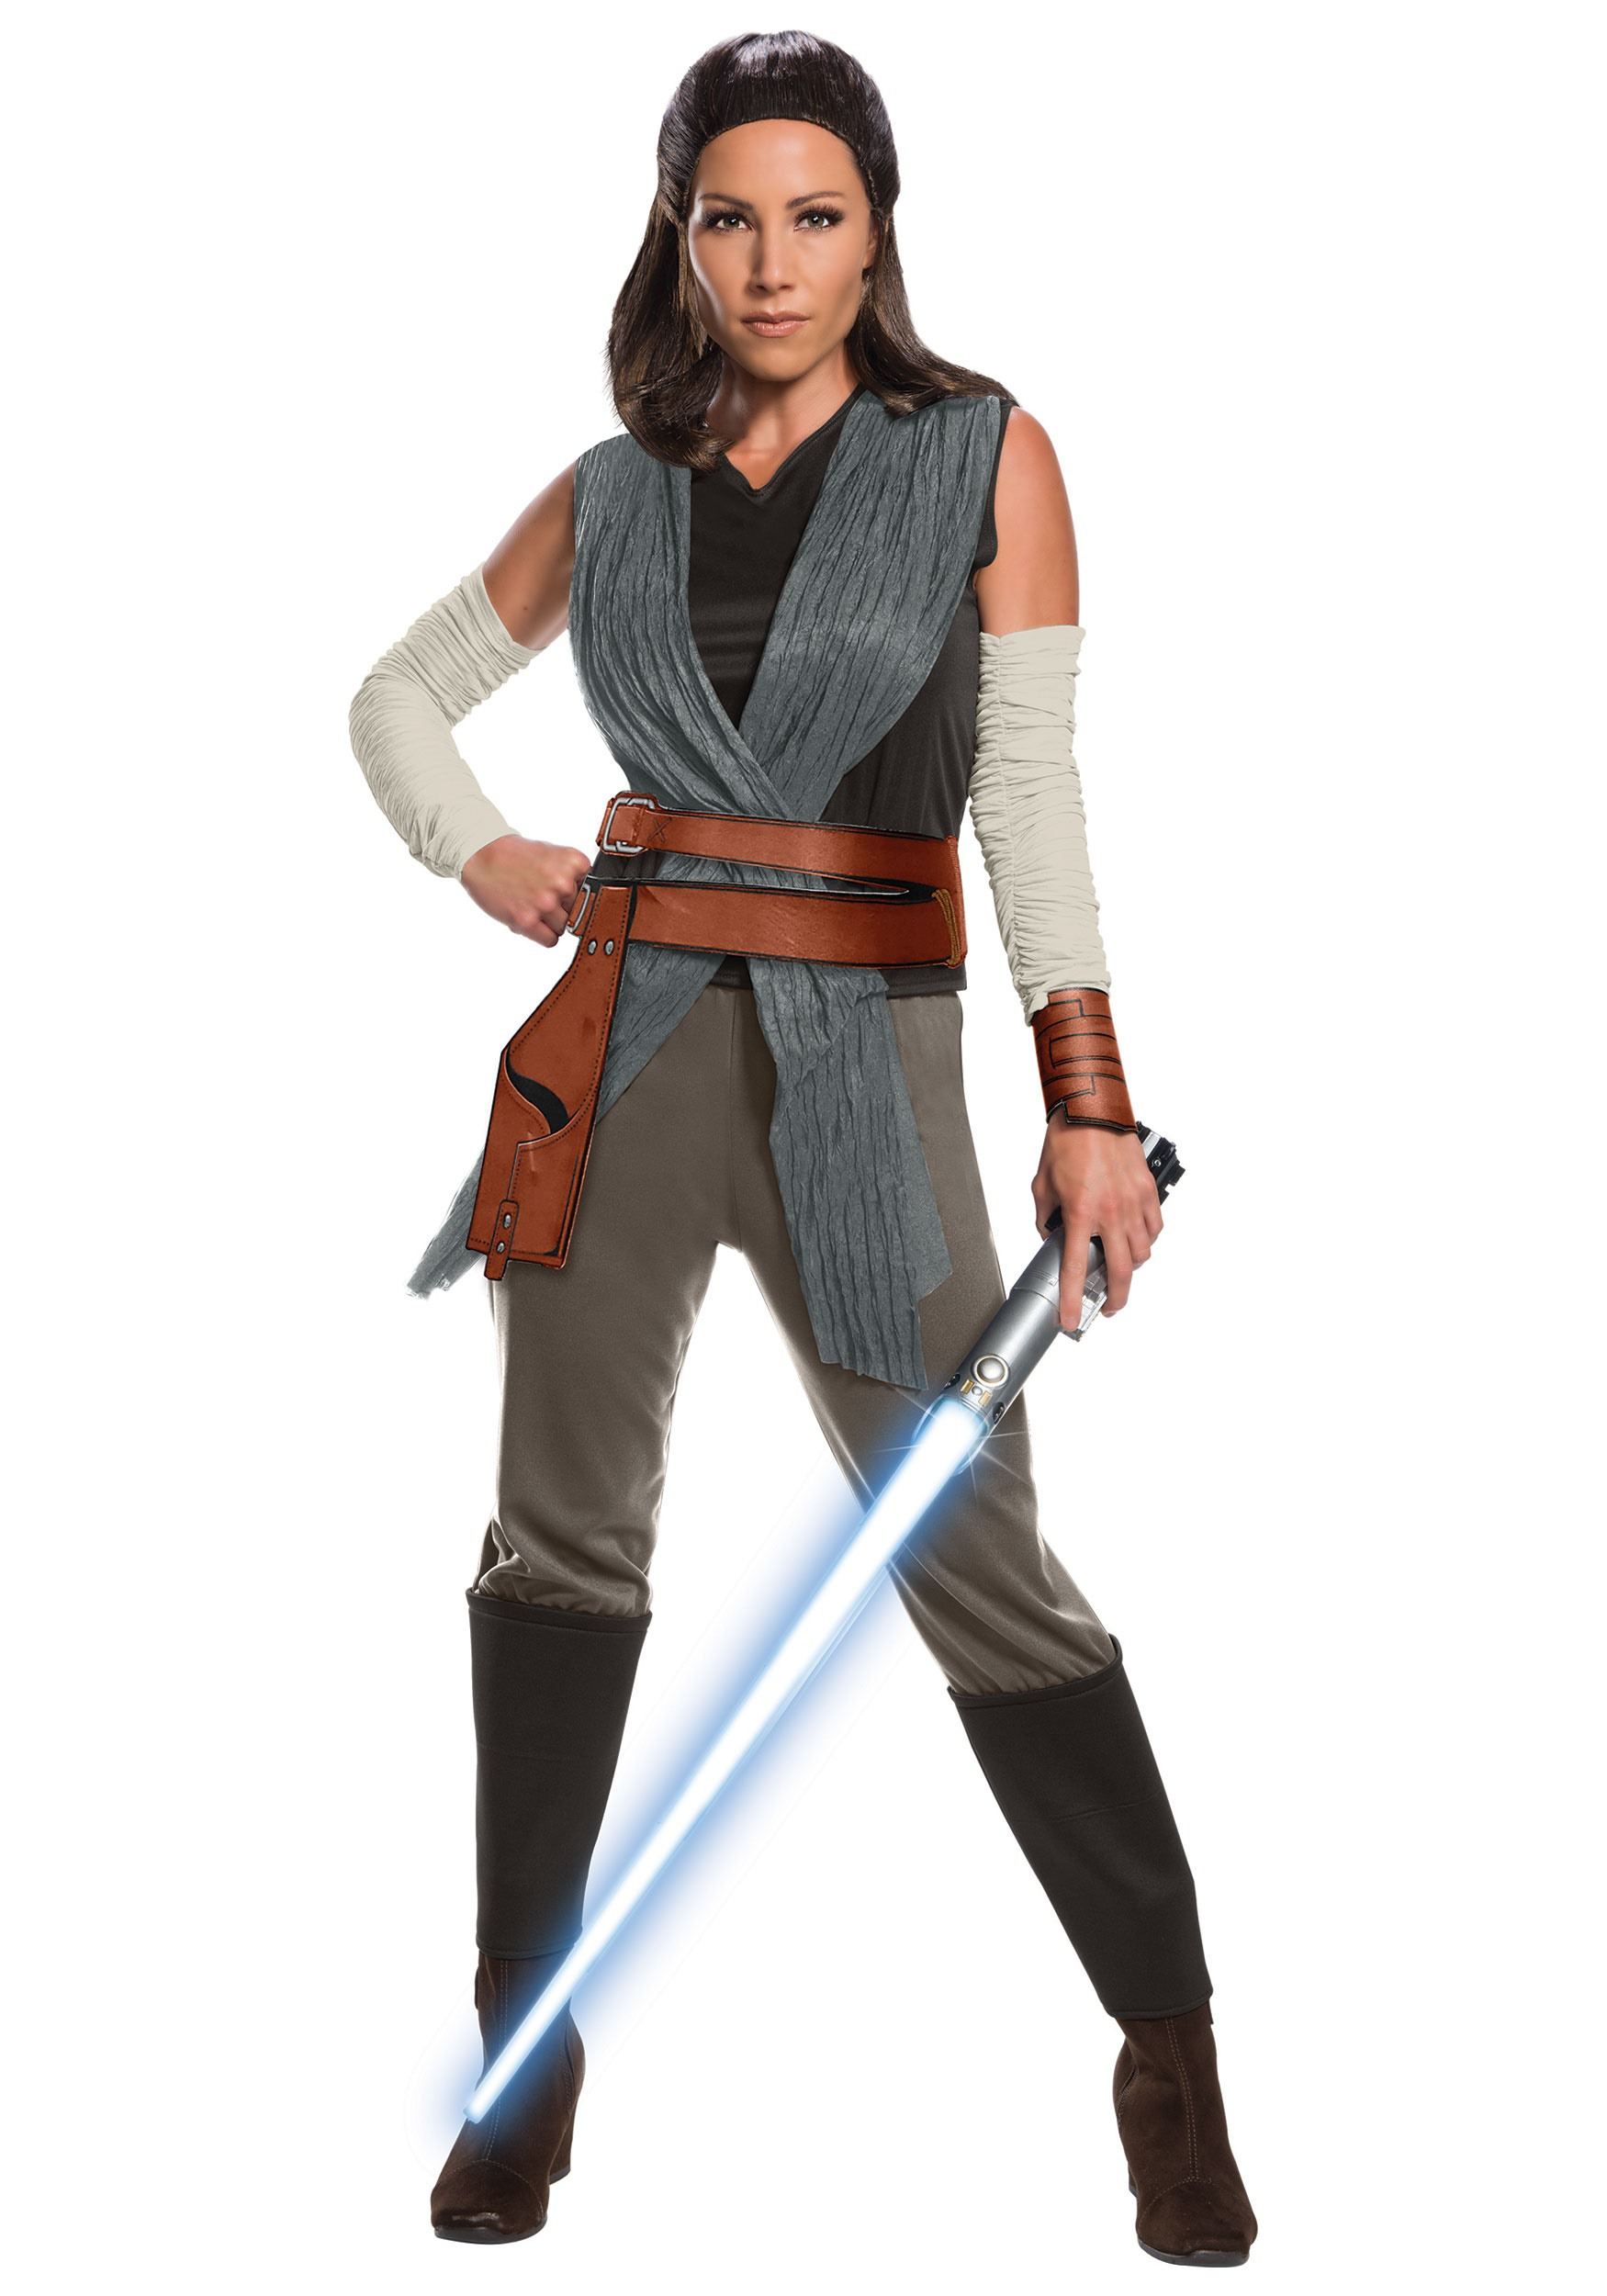 star wars the last jedi deluxe rey costume for women. Black Bedroom Furniture Sets. Home Design Ideas